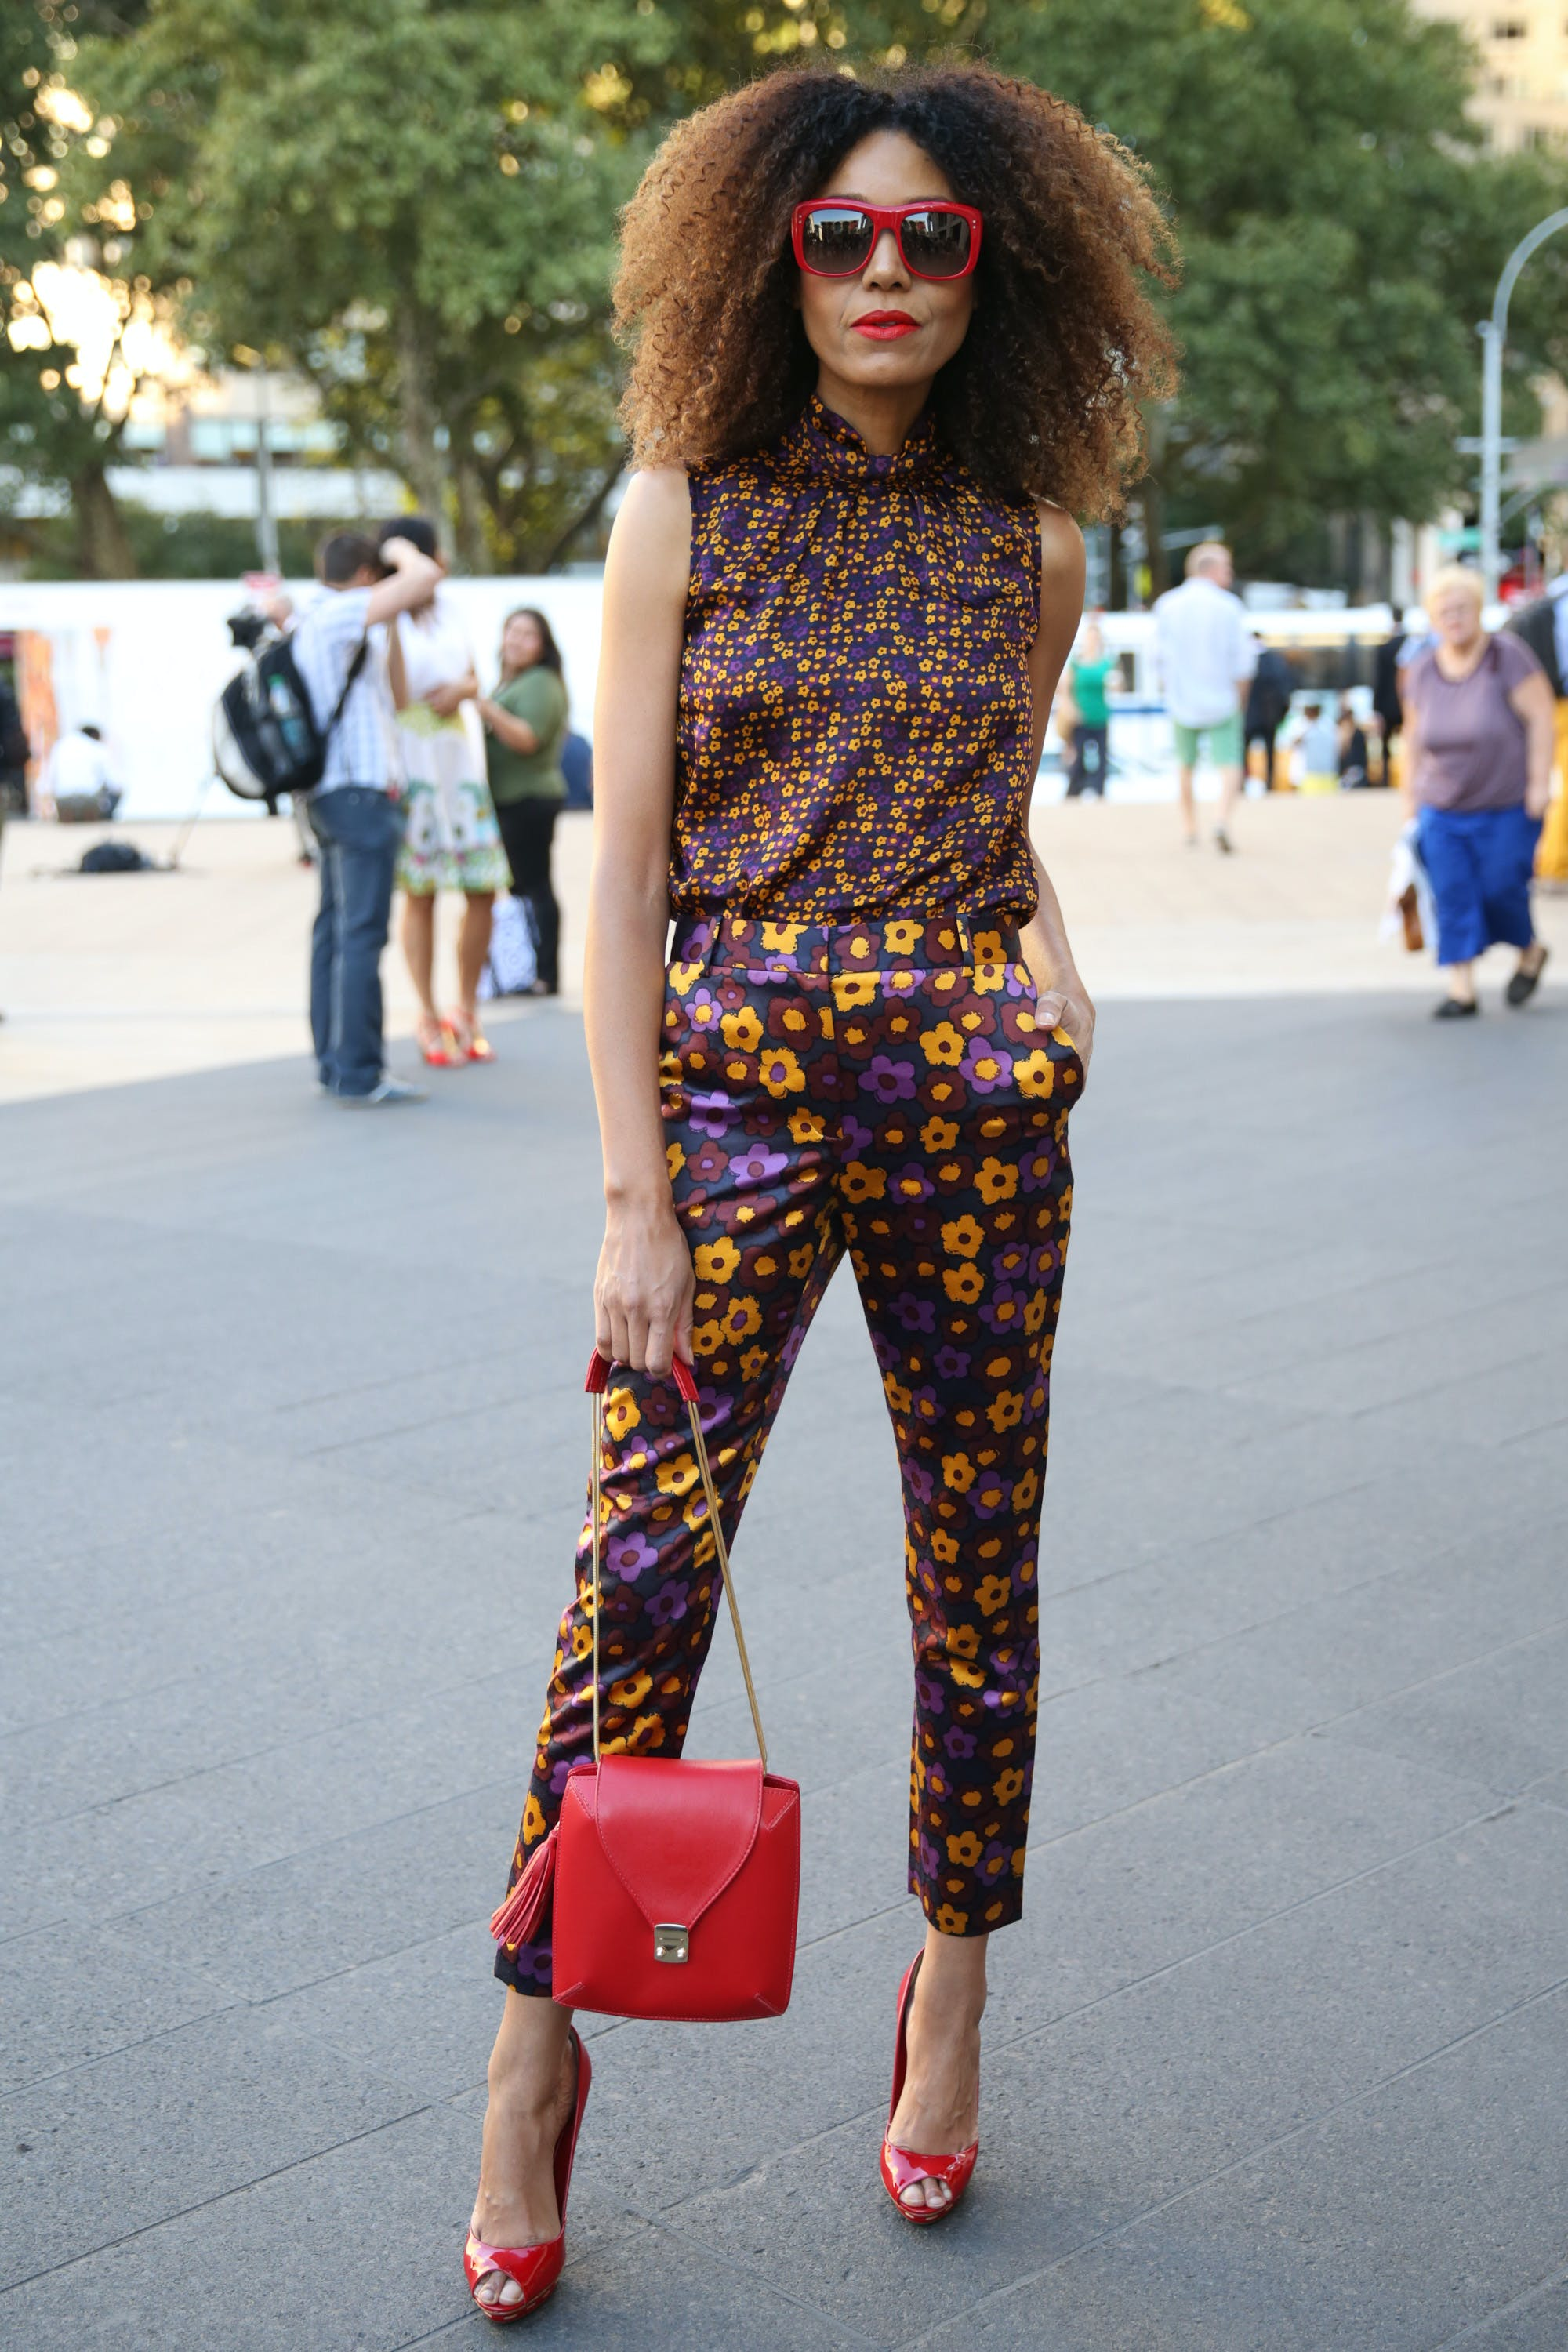 woman wearing a min print top and large print pants